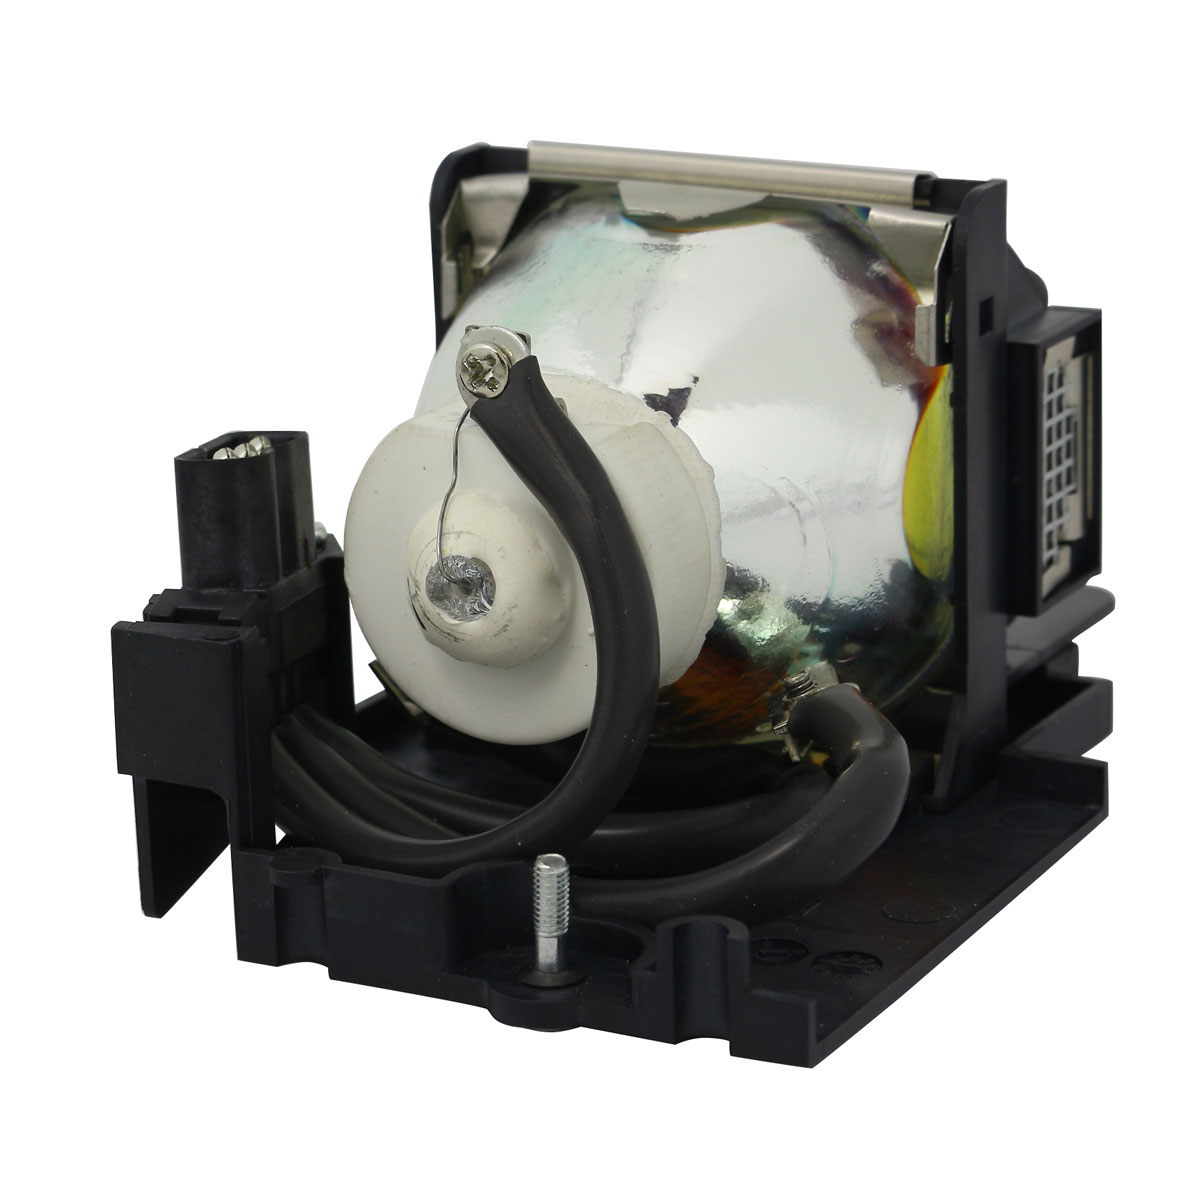 Bulb Only Lutema Platinum for Claxan CL-16022 Projector Lamp